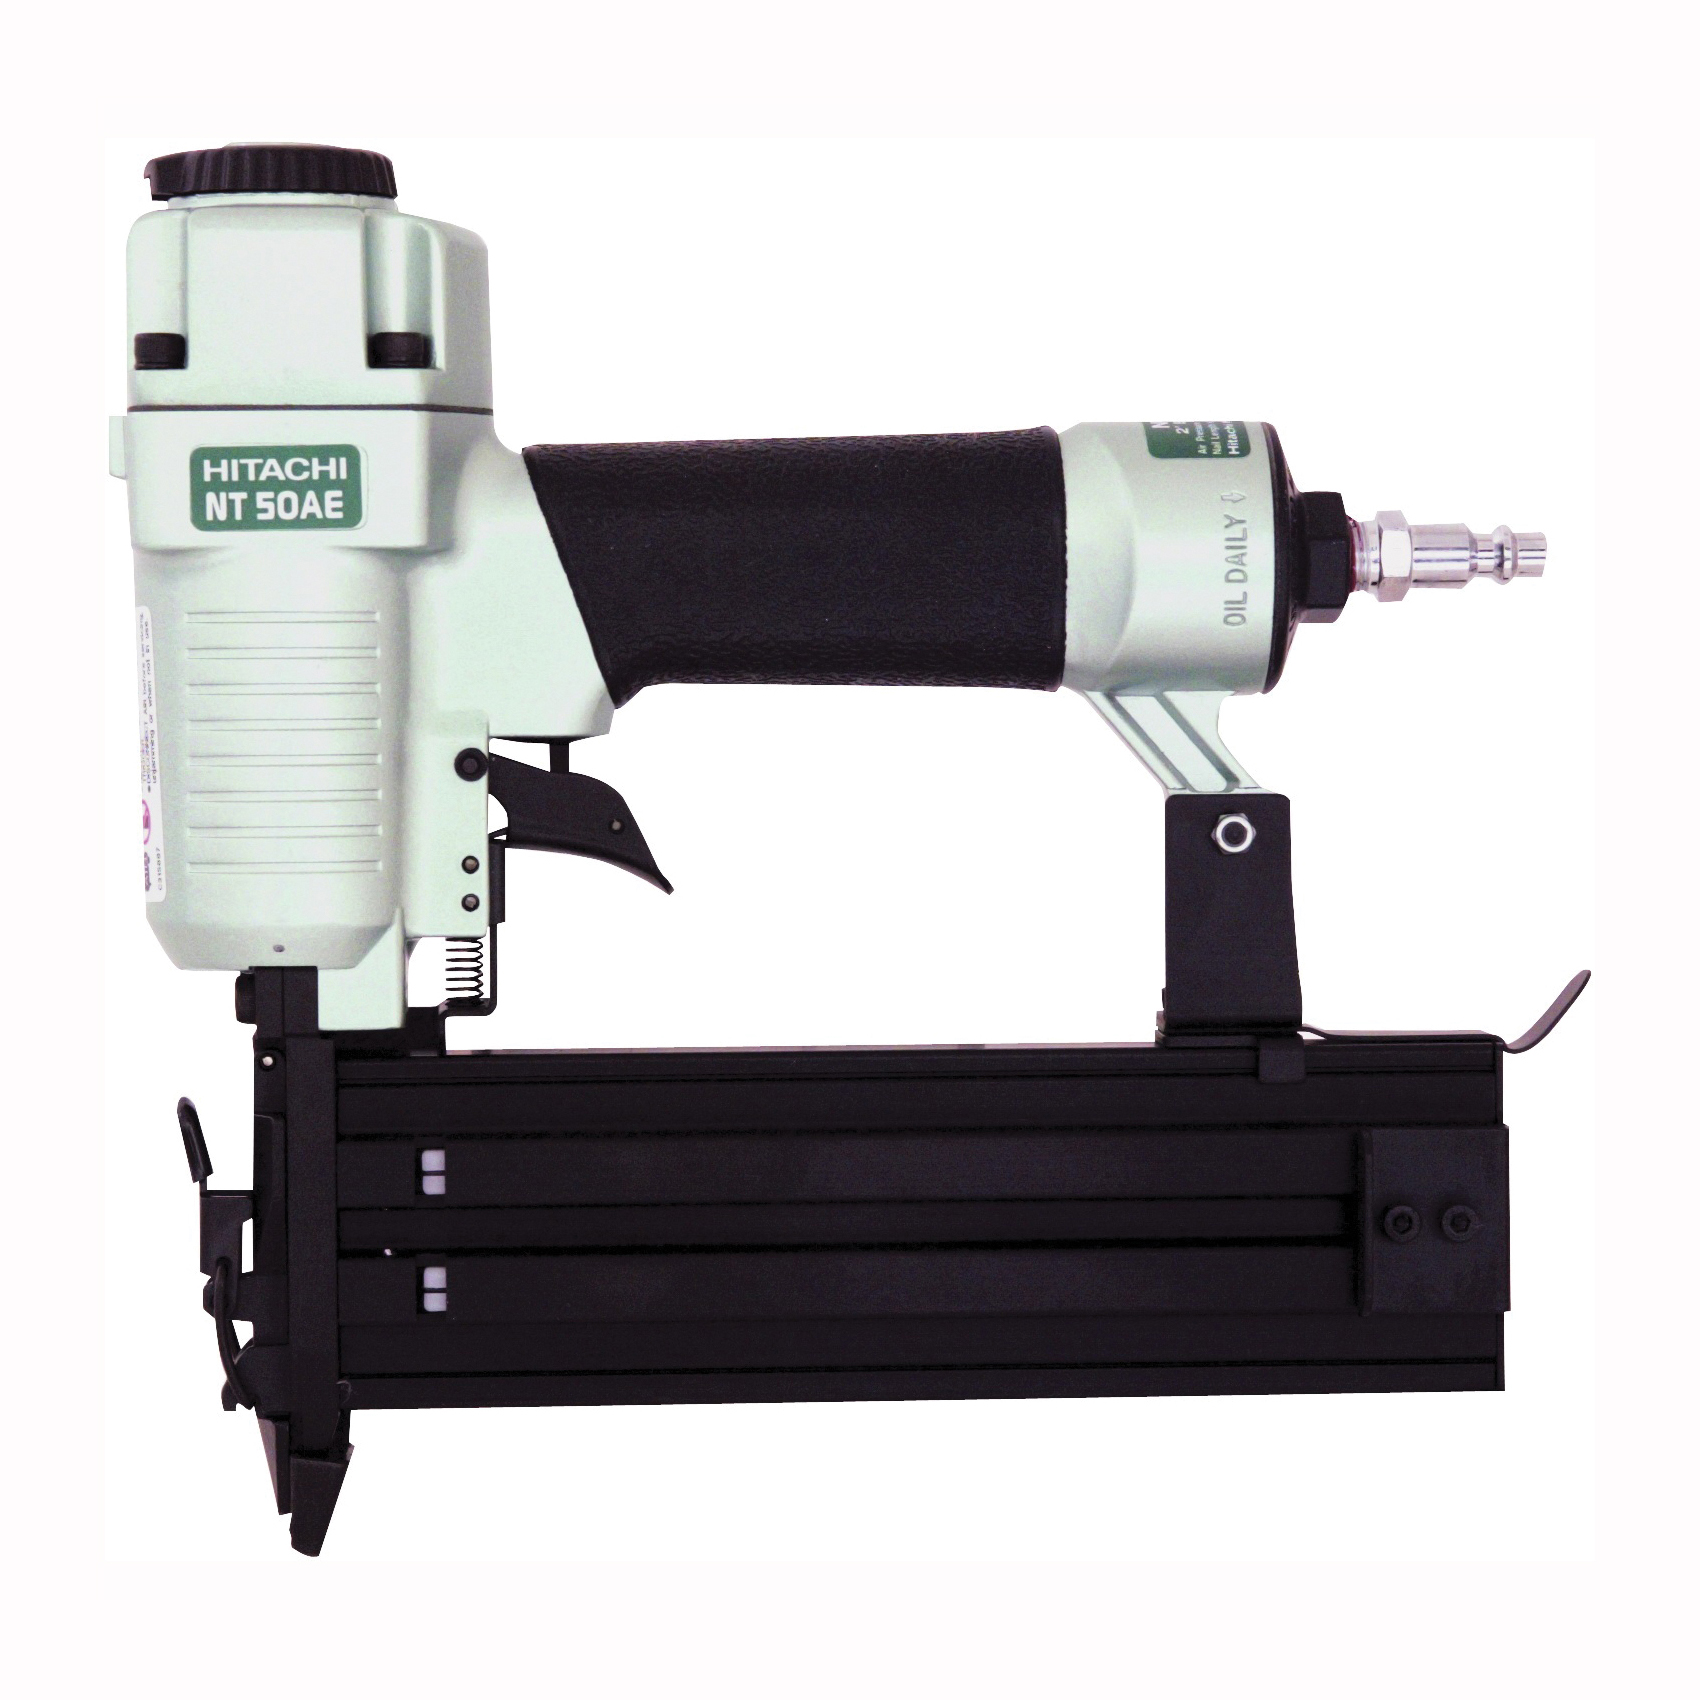 Picture of METABO NT50AE2 Brad Nailer, 100 Magazine, 0.025 cfm Air